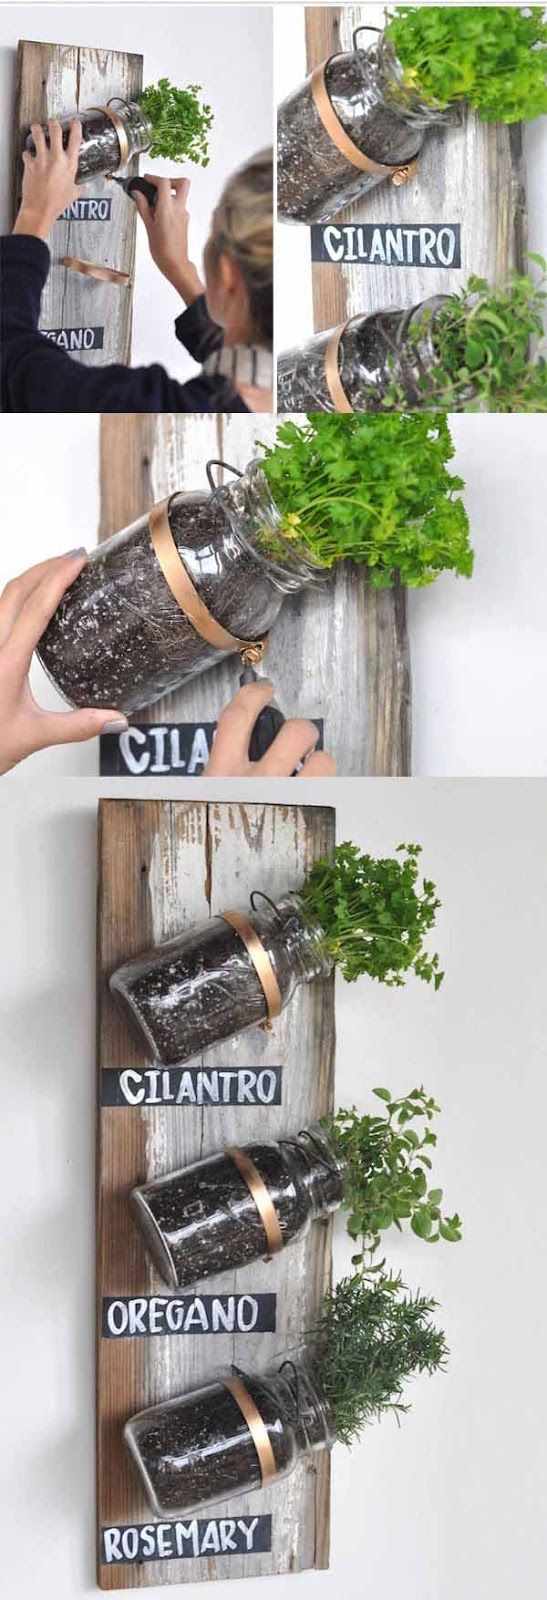 MASON JAR HERB GARDEN - I want to add this to a